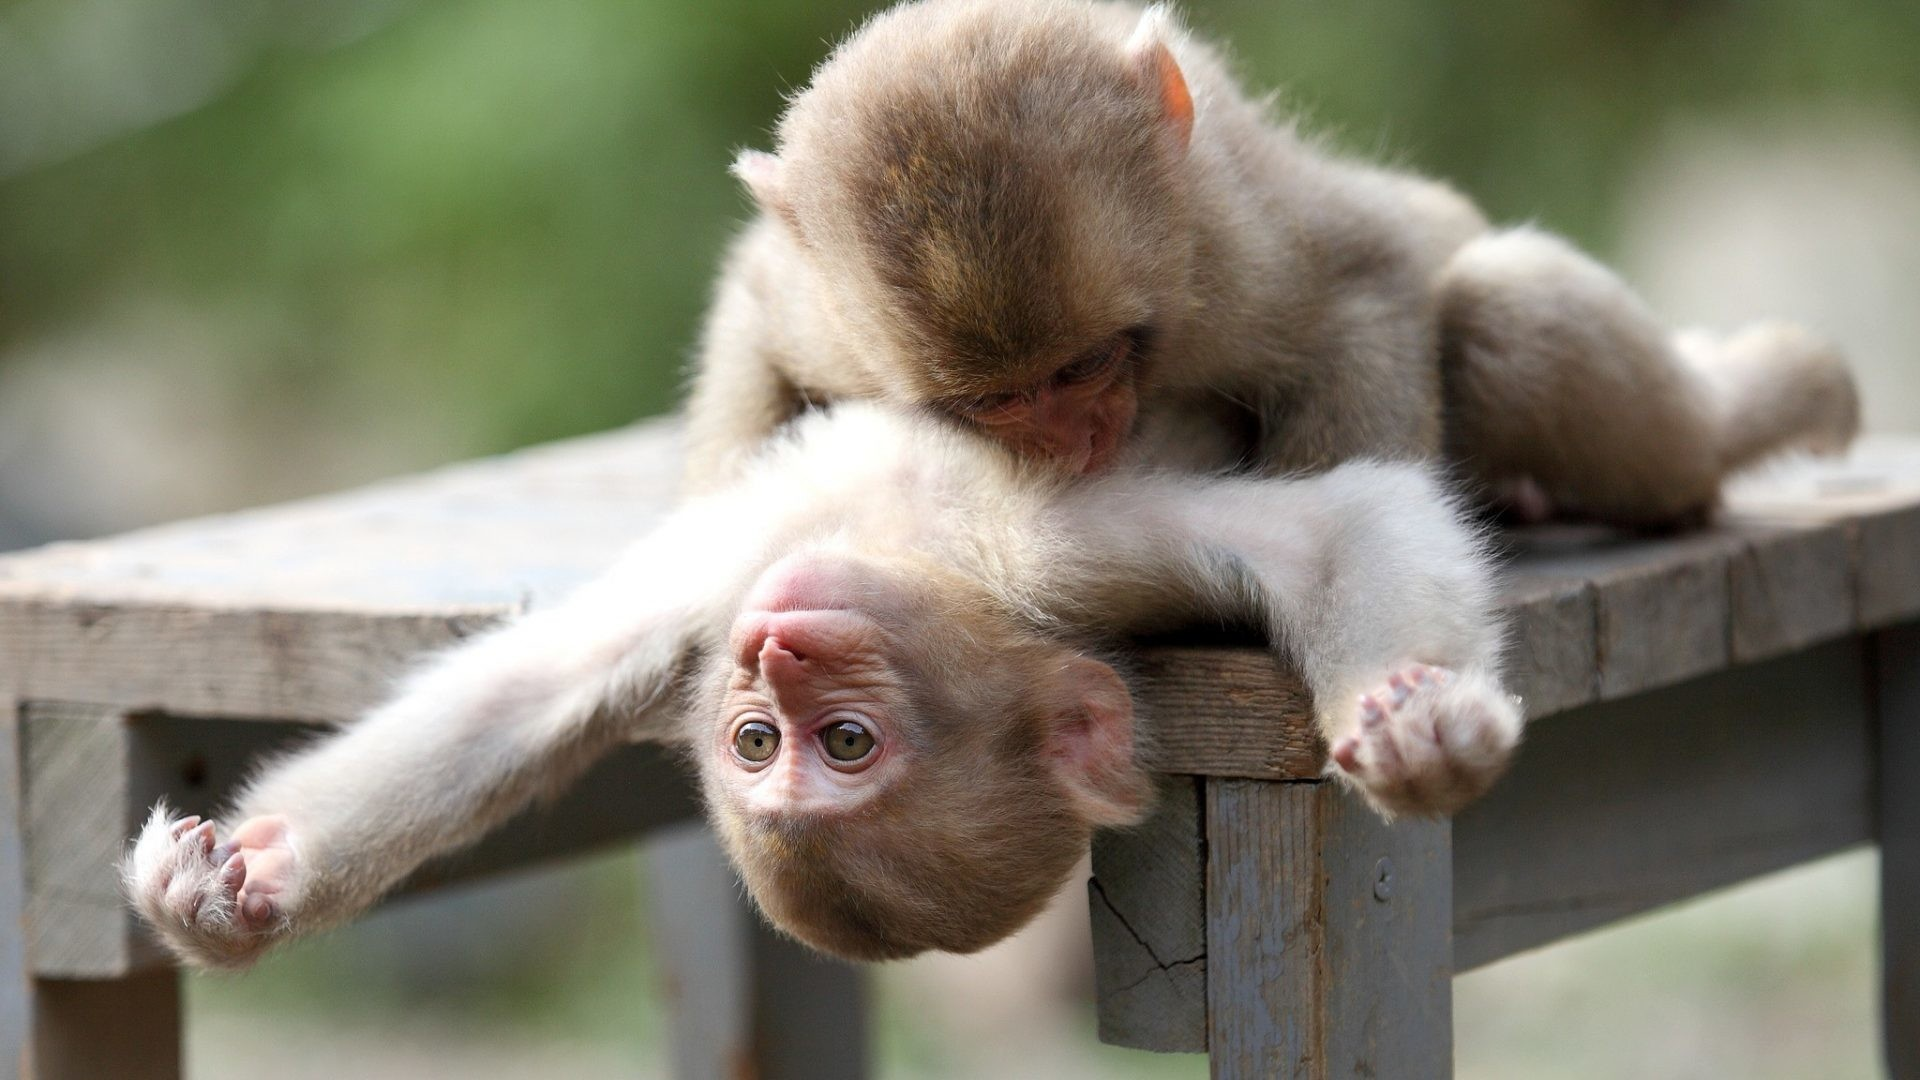 1920x1080 Apes Tag - Monkeys Apes Play Animal Mother And Baby Images for HD 16:9